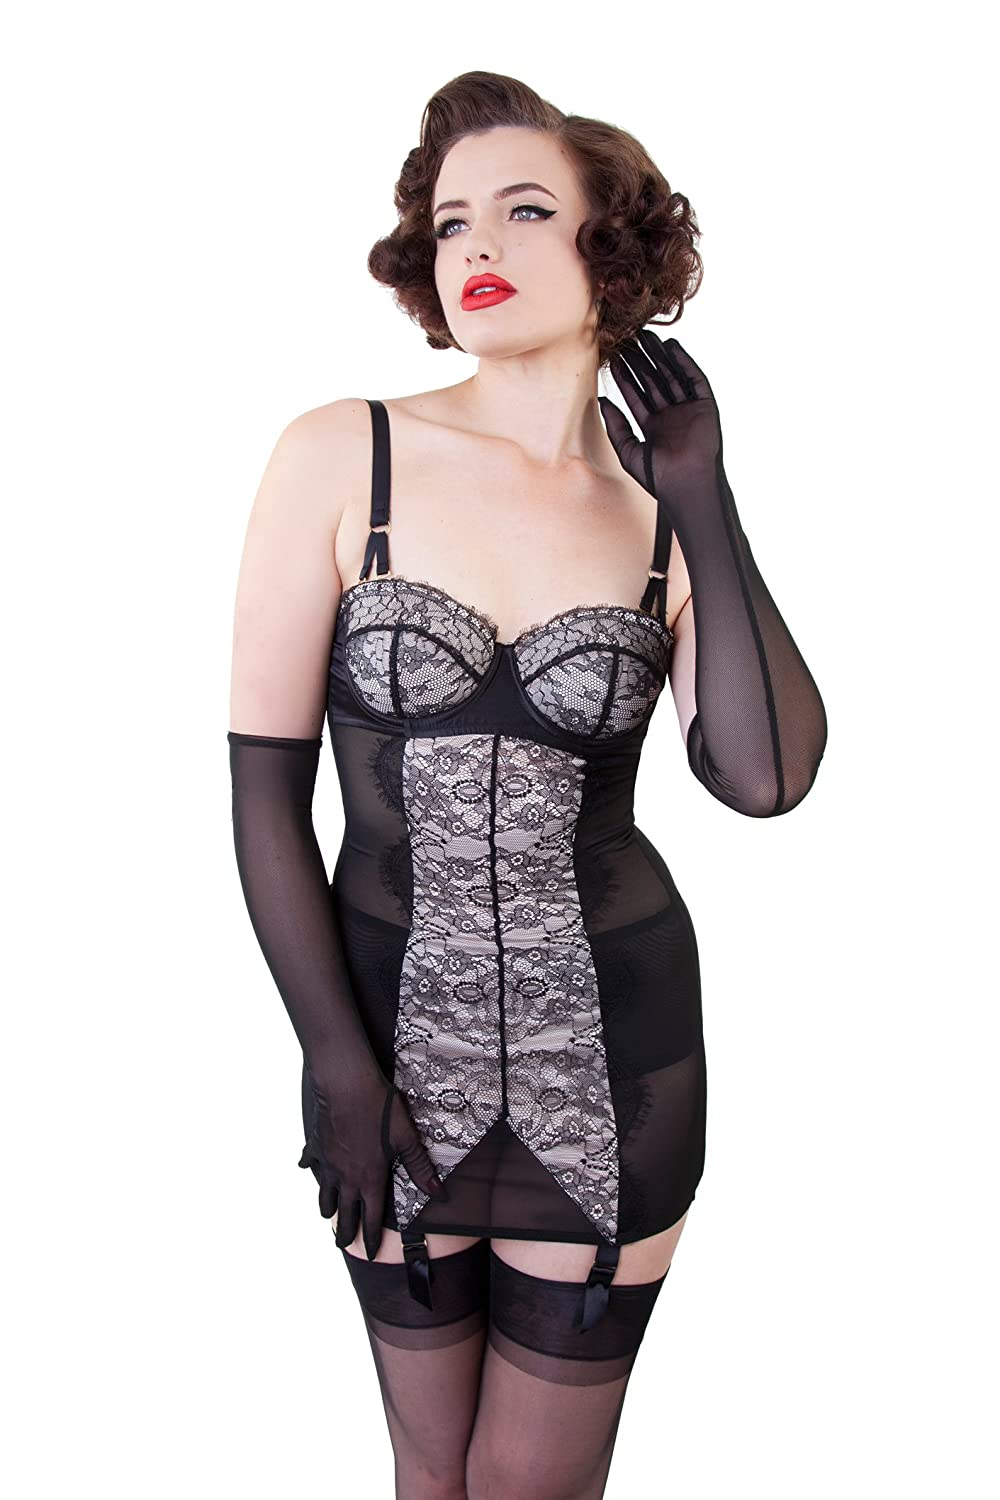 Retro Lingerie, Vintage Lingerie, New 1950s,1960s, 1970s Bettie Page Lace Curve Creator Slip by $98.00 AT vintagedancer.com